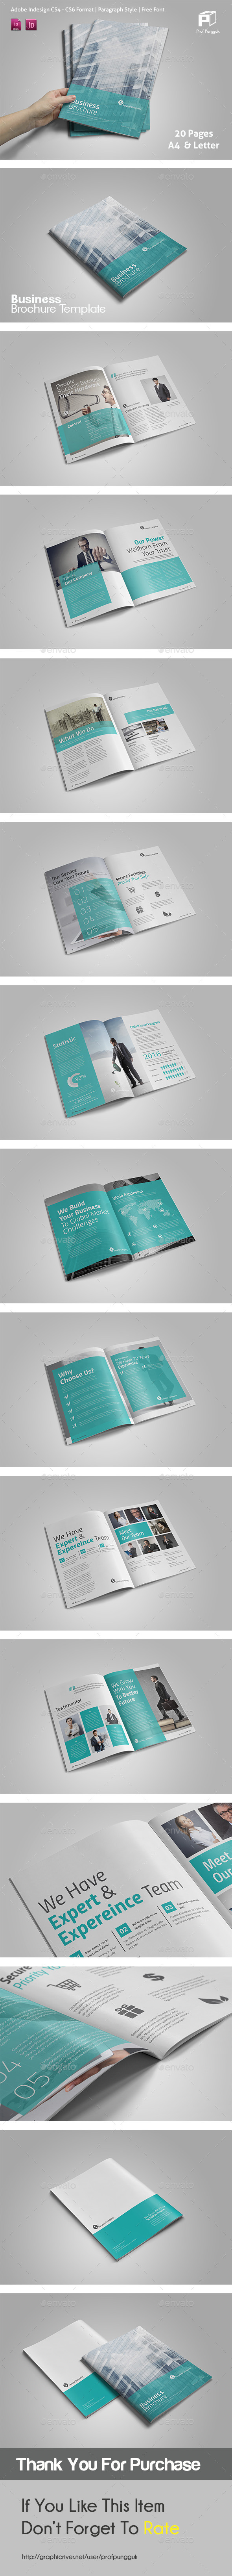 Corporate Brochure Vol.6 - Corporate Brochures